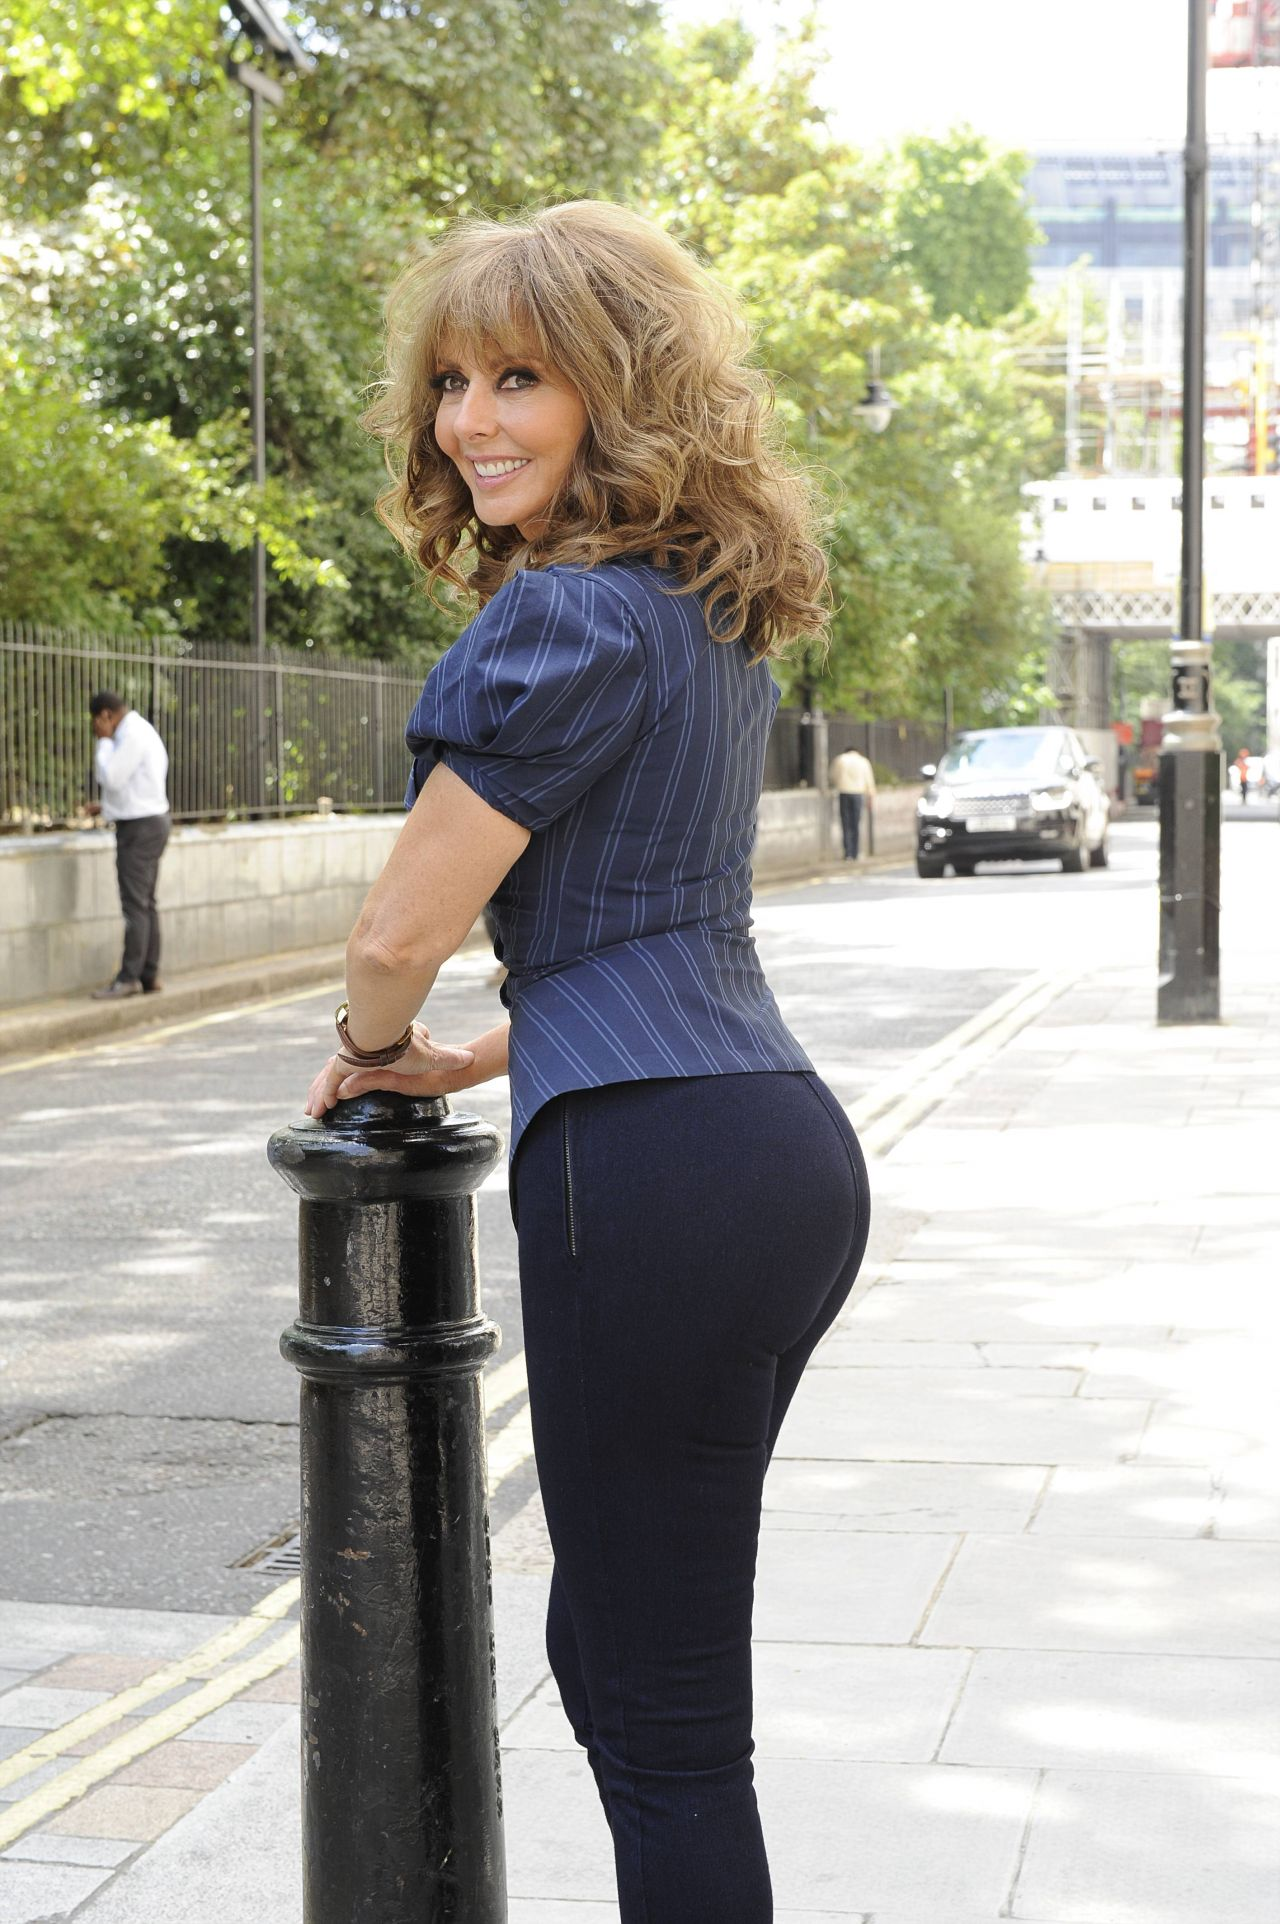 Carol Vorderman Posing For The 2014 Rear Of The Year July 2014-5349